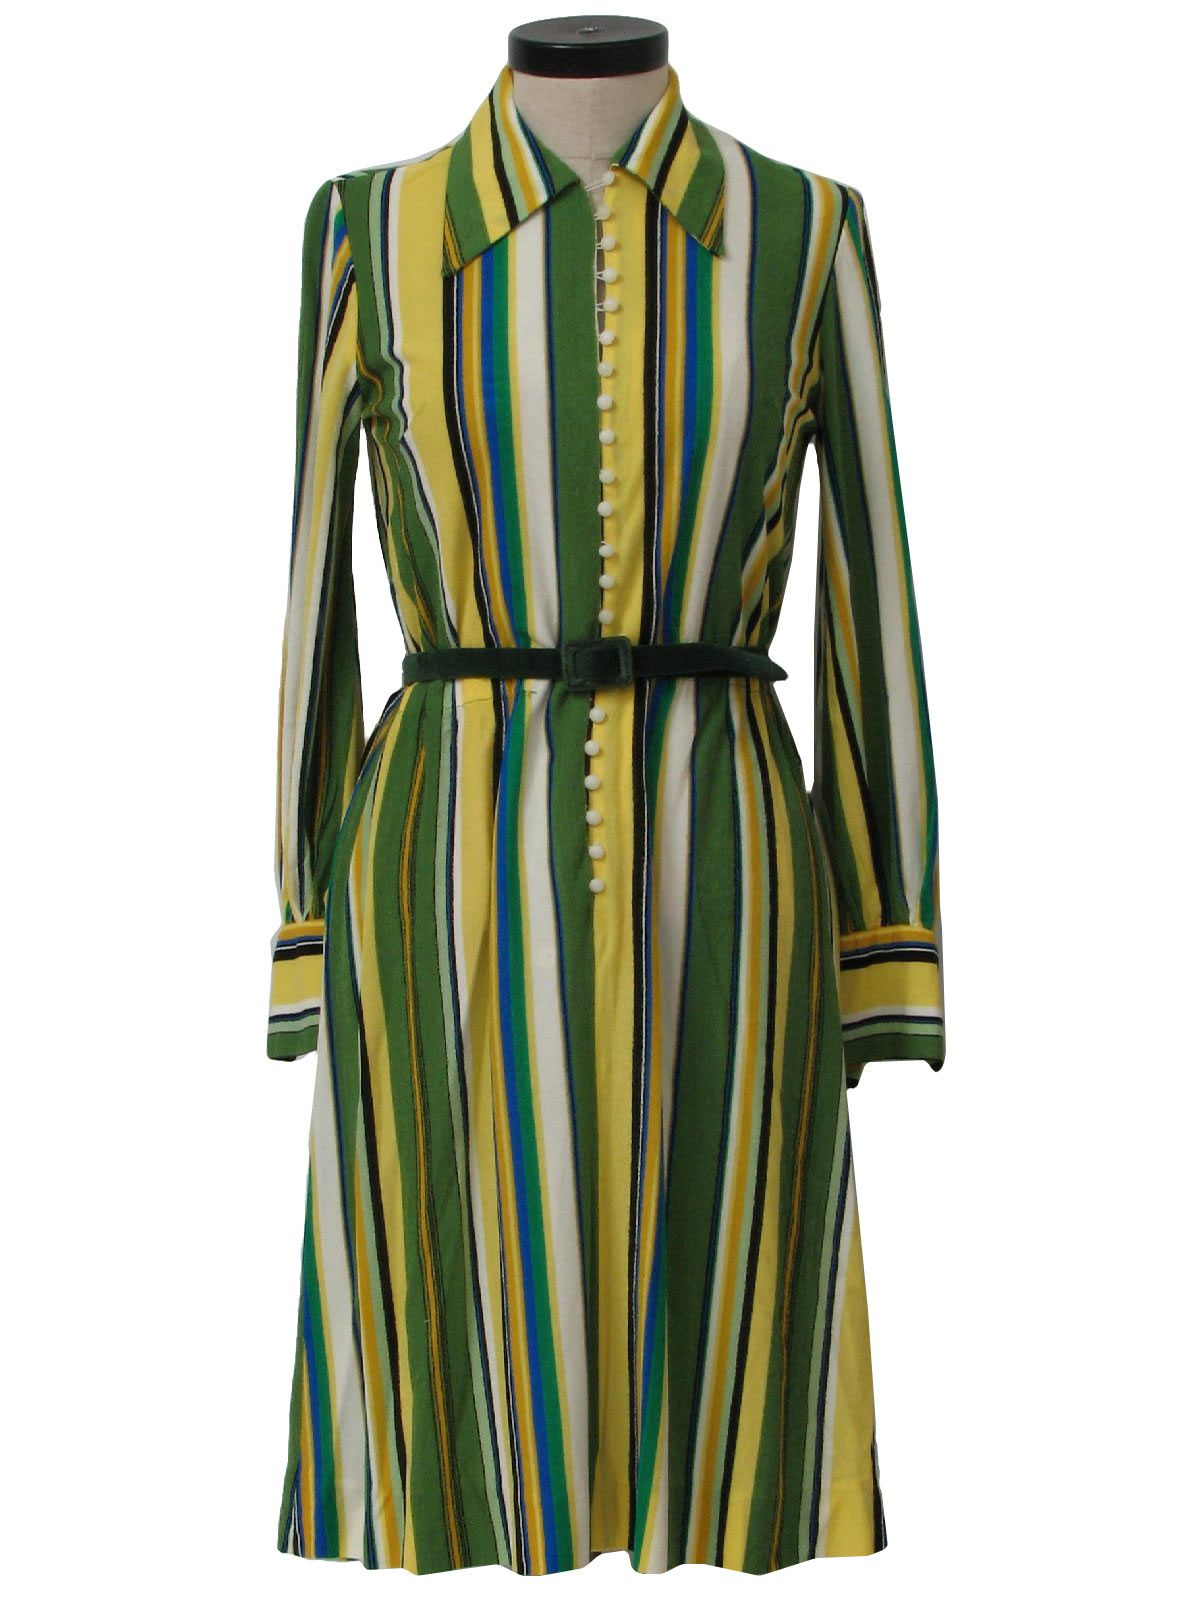 Funky olive stripes meet office ware. 60s -Home Sewn- Womens white, kelly celadon and olive greens, black, yellow, gold, electric blue, knitted-in stripes '60's dress.